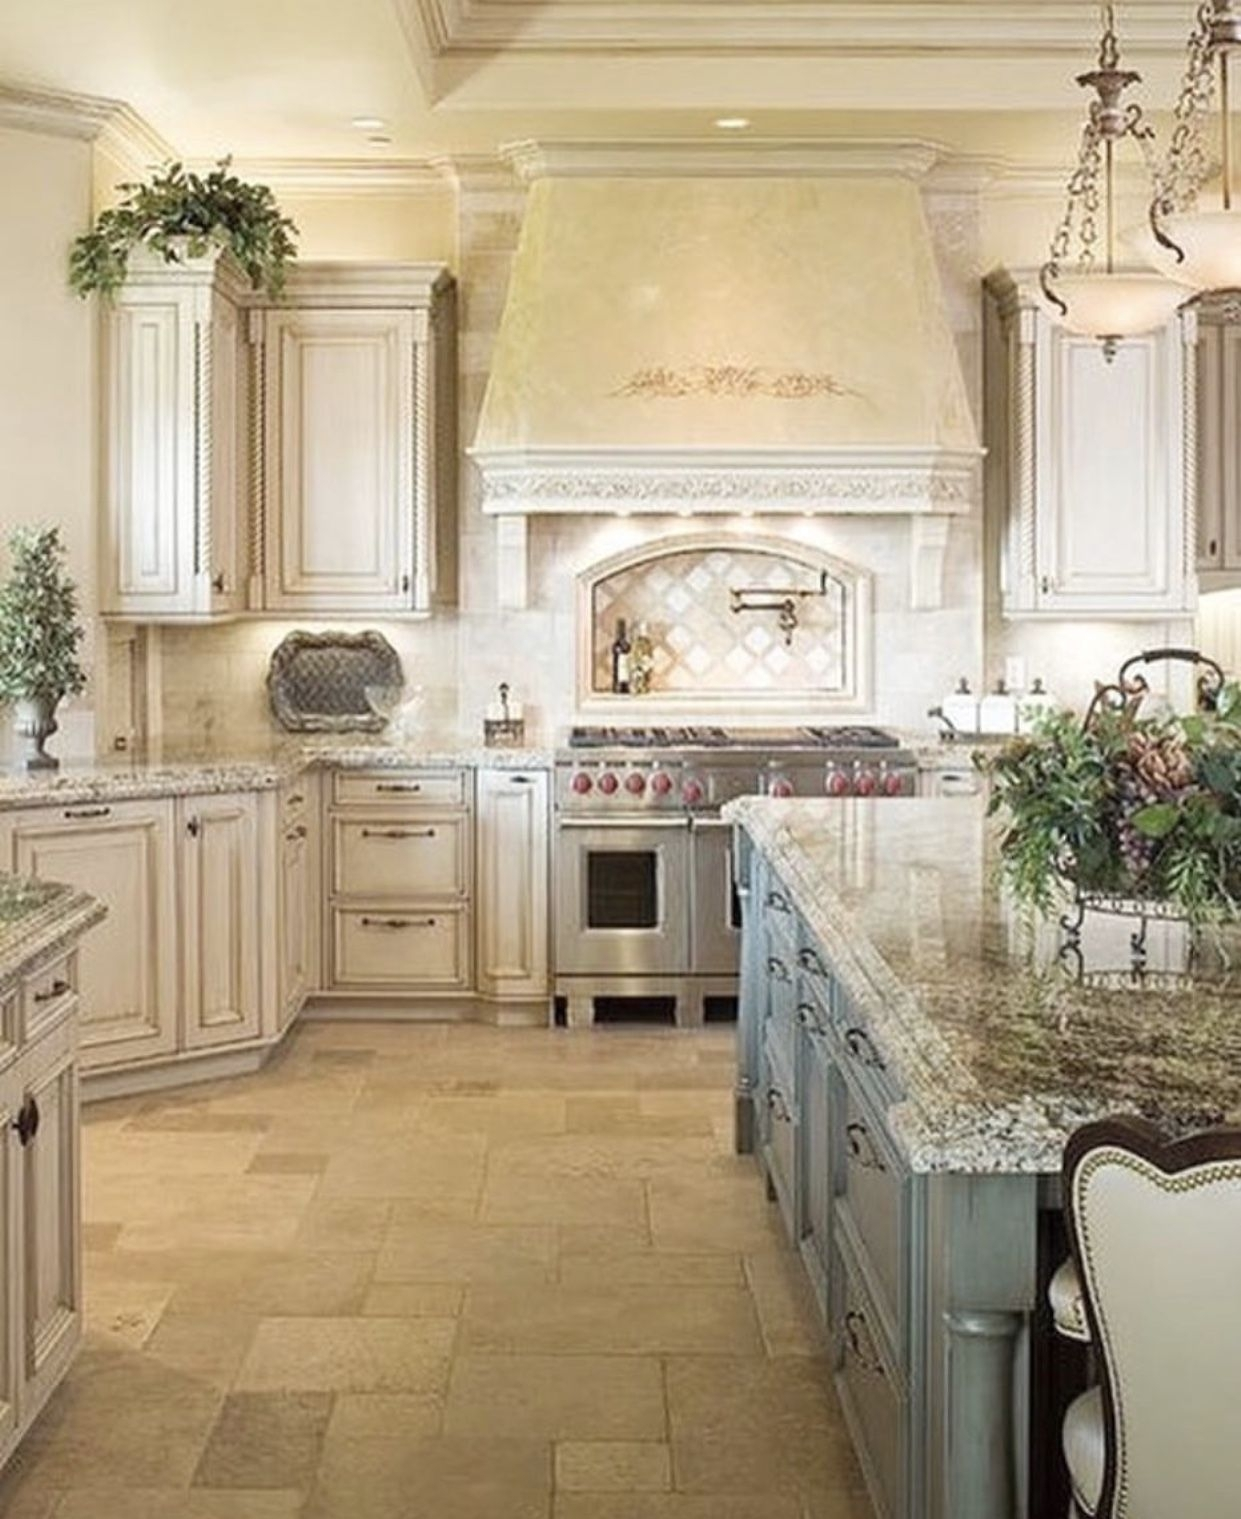 French Country Kitchen Decor You Ll Love In 2021 Visualhunt